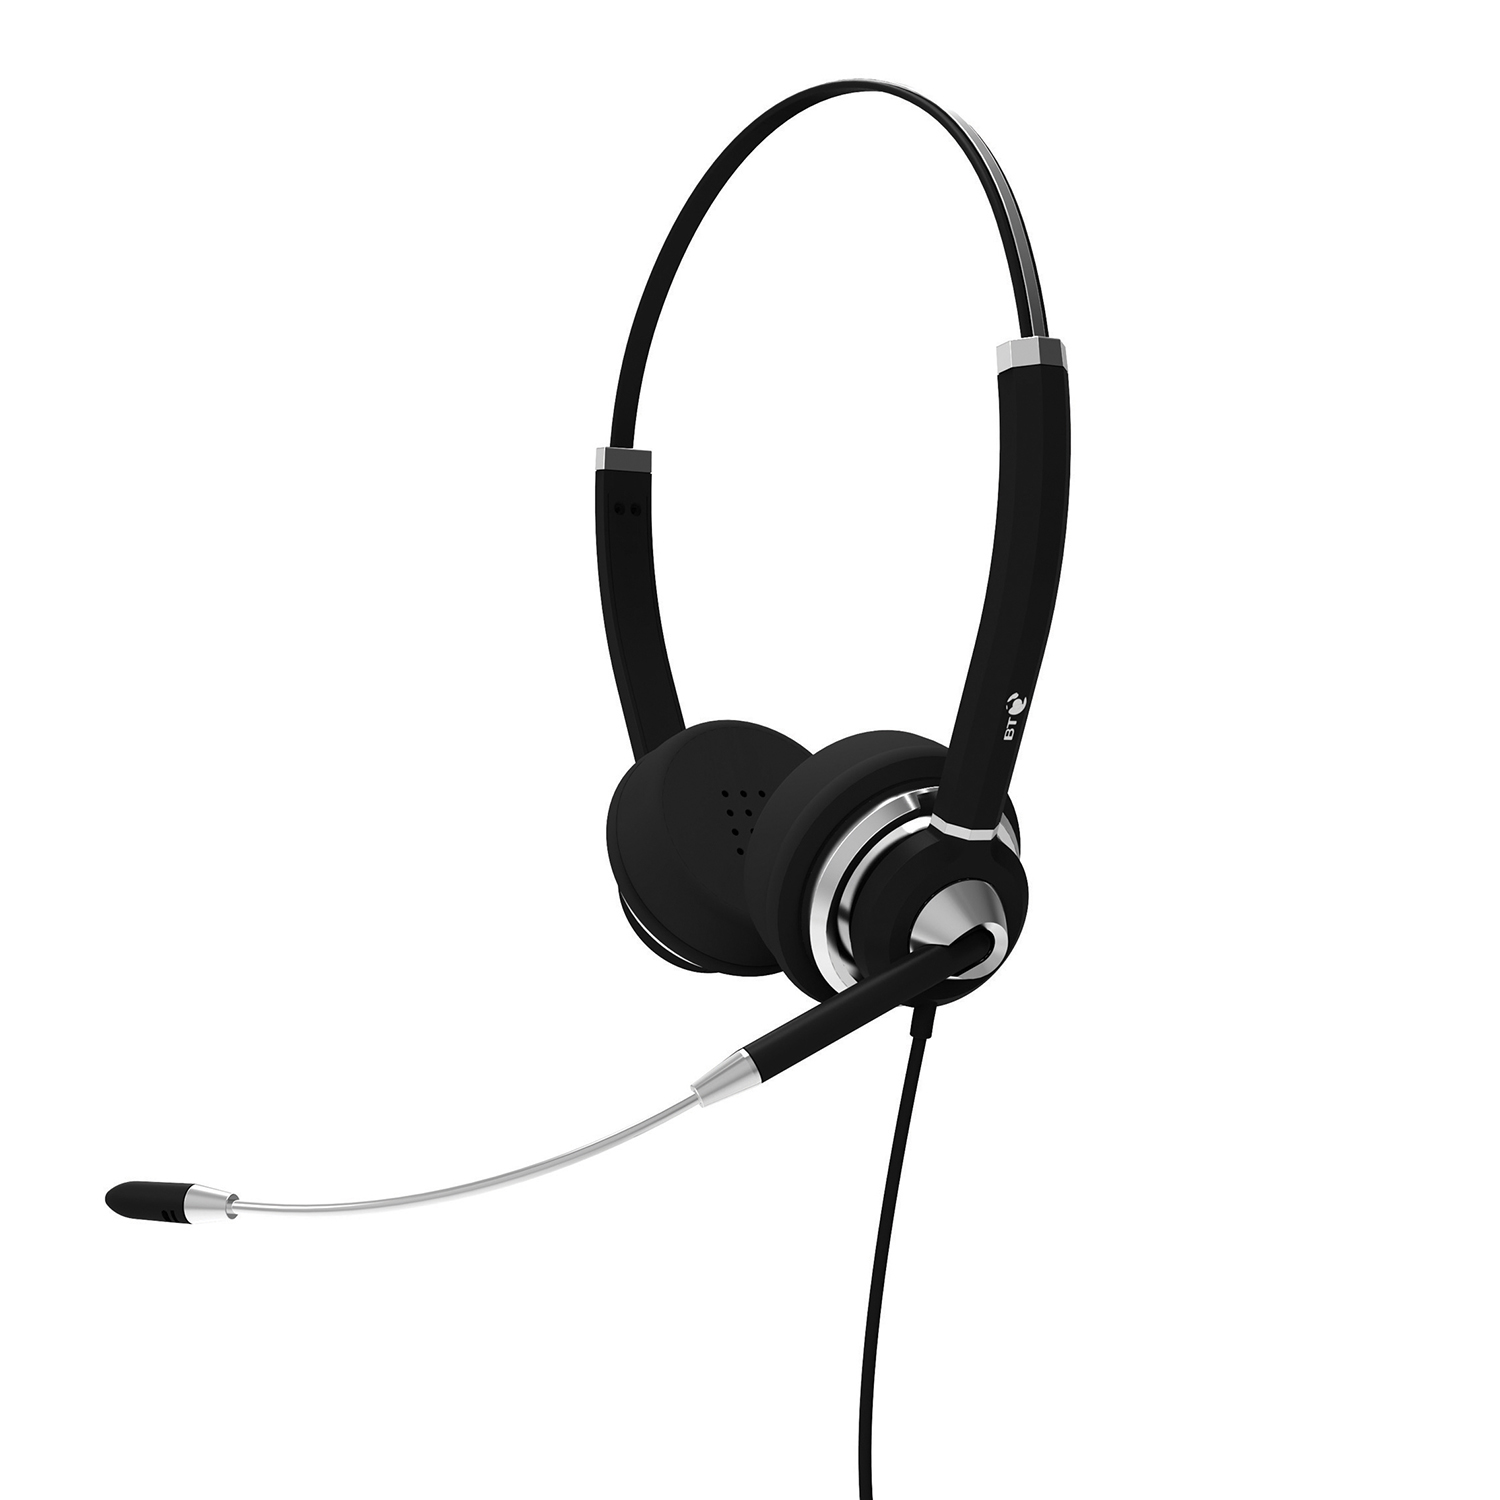 BT H41 Binaural Noise Cancelling Headset